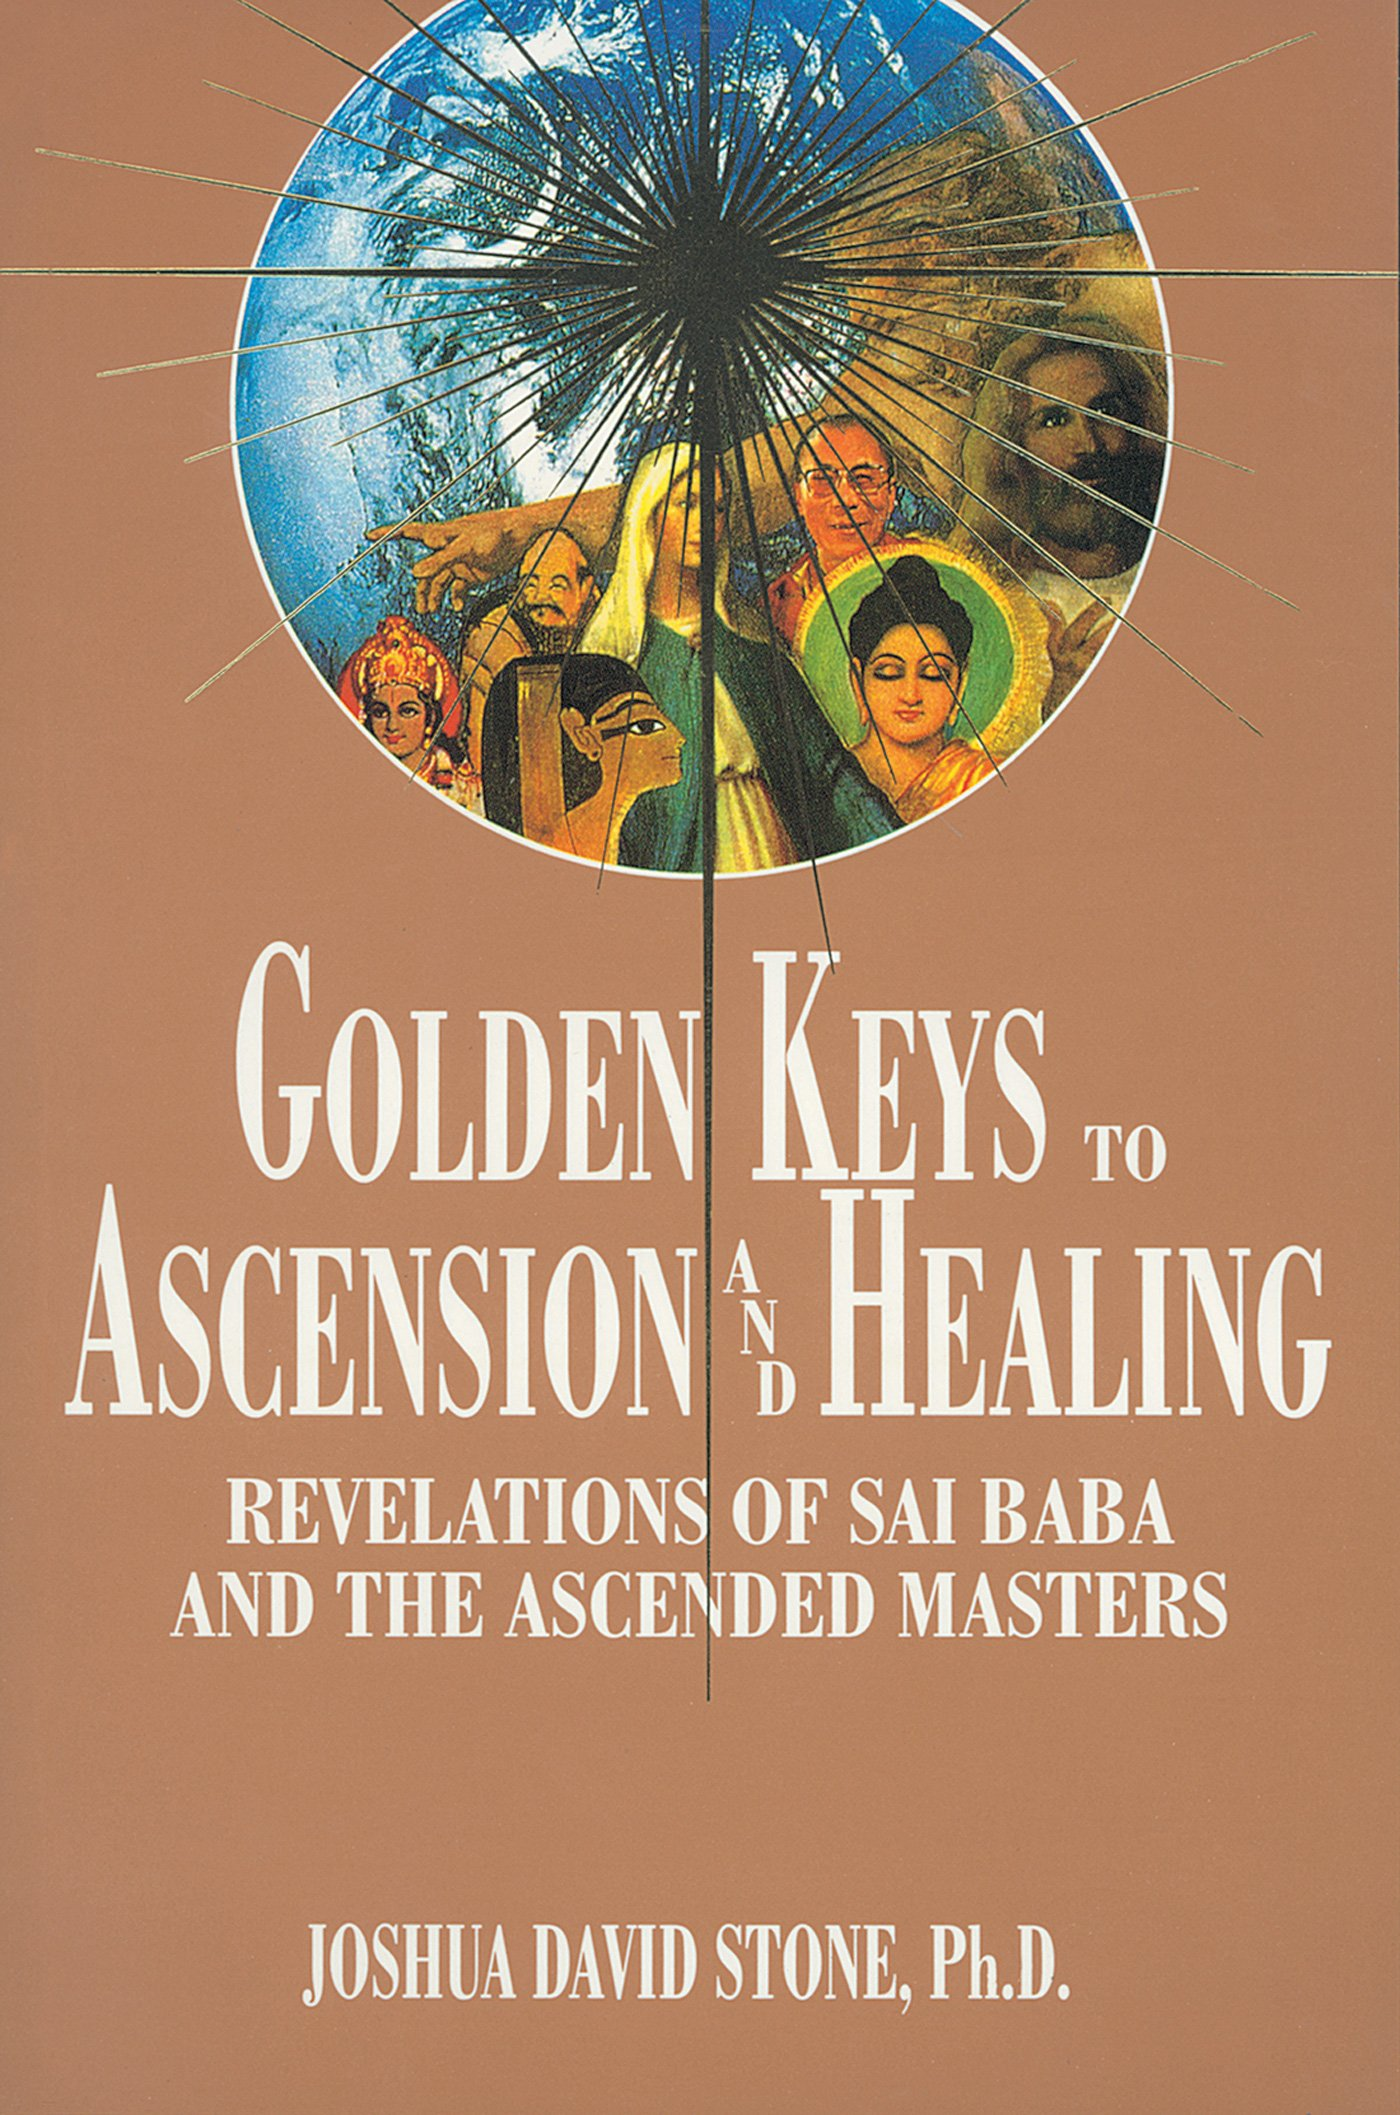 Golden Keys to Ascension and Healing: Revelations of Sai